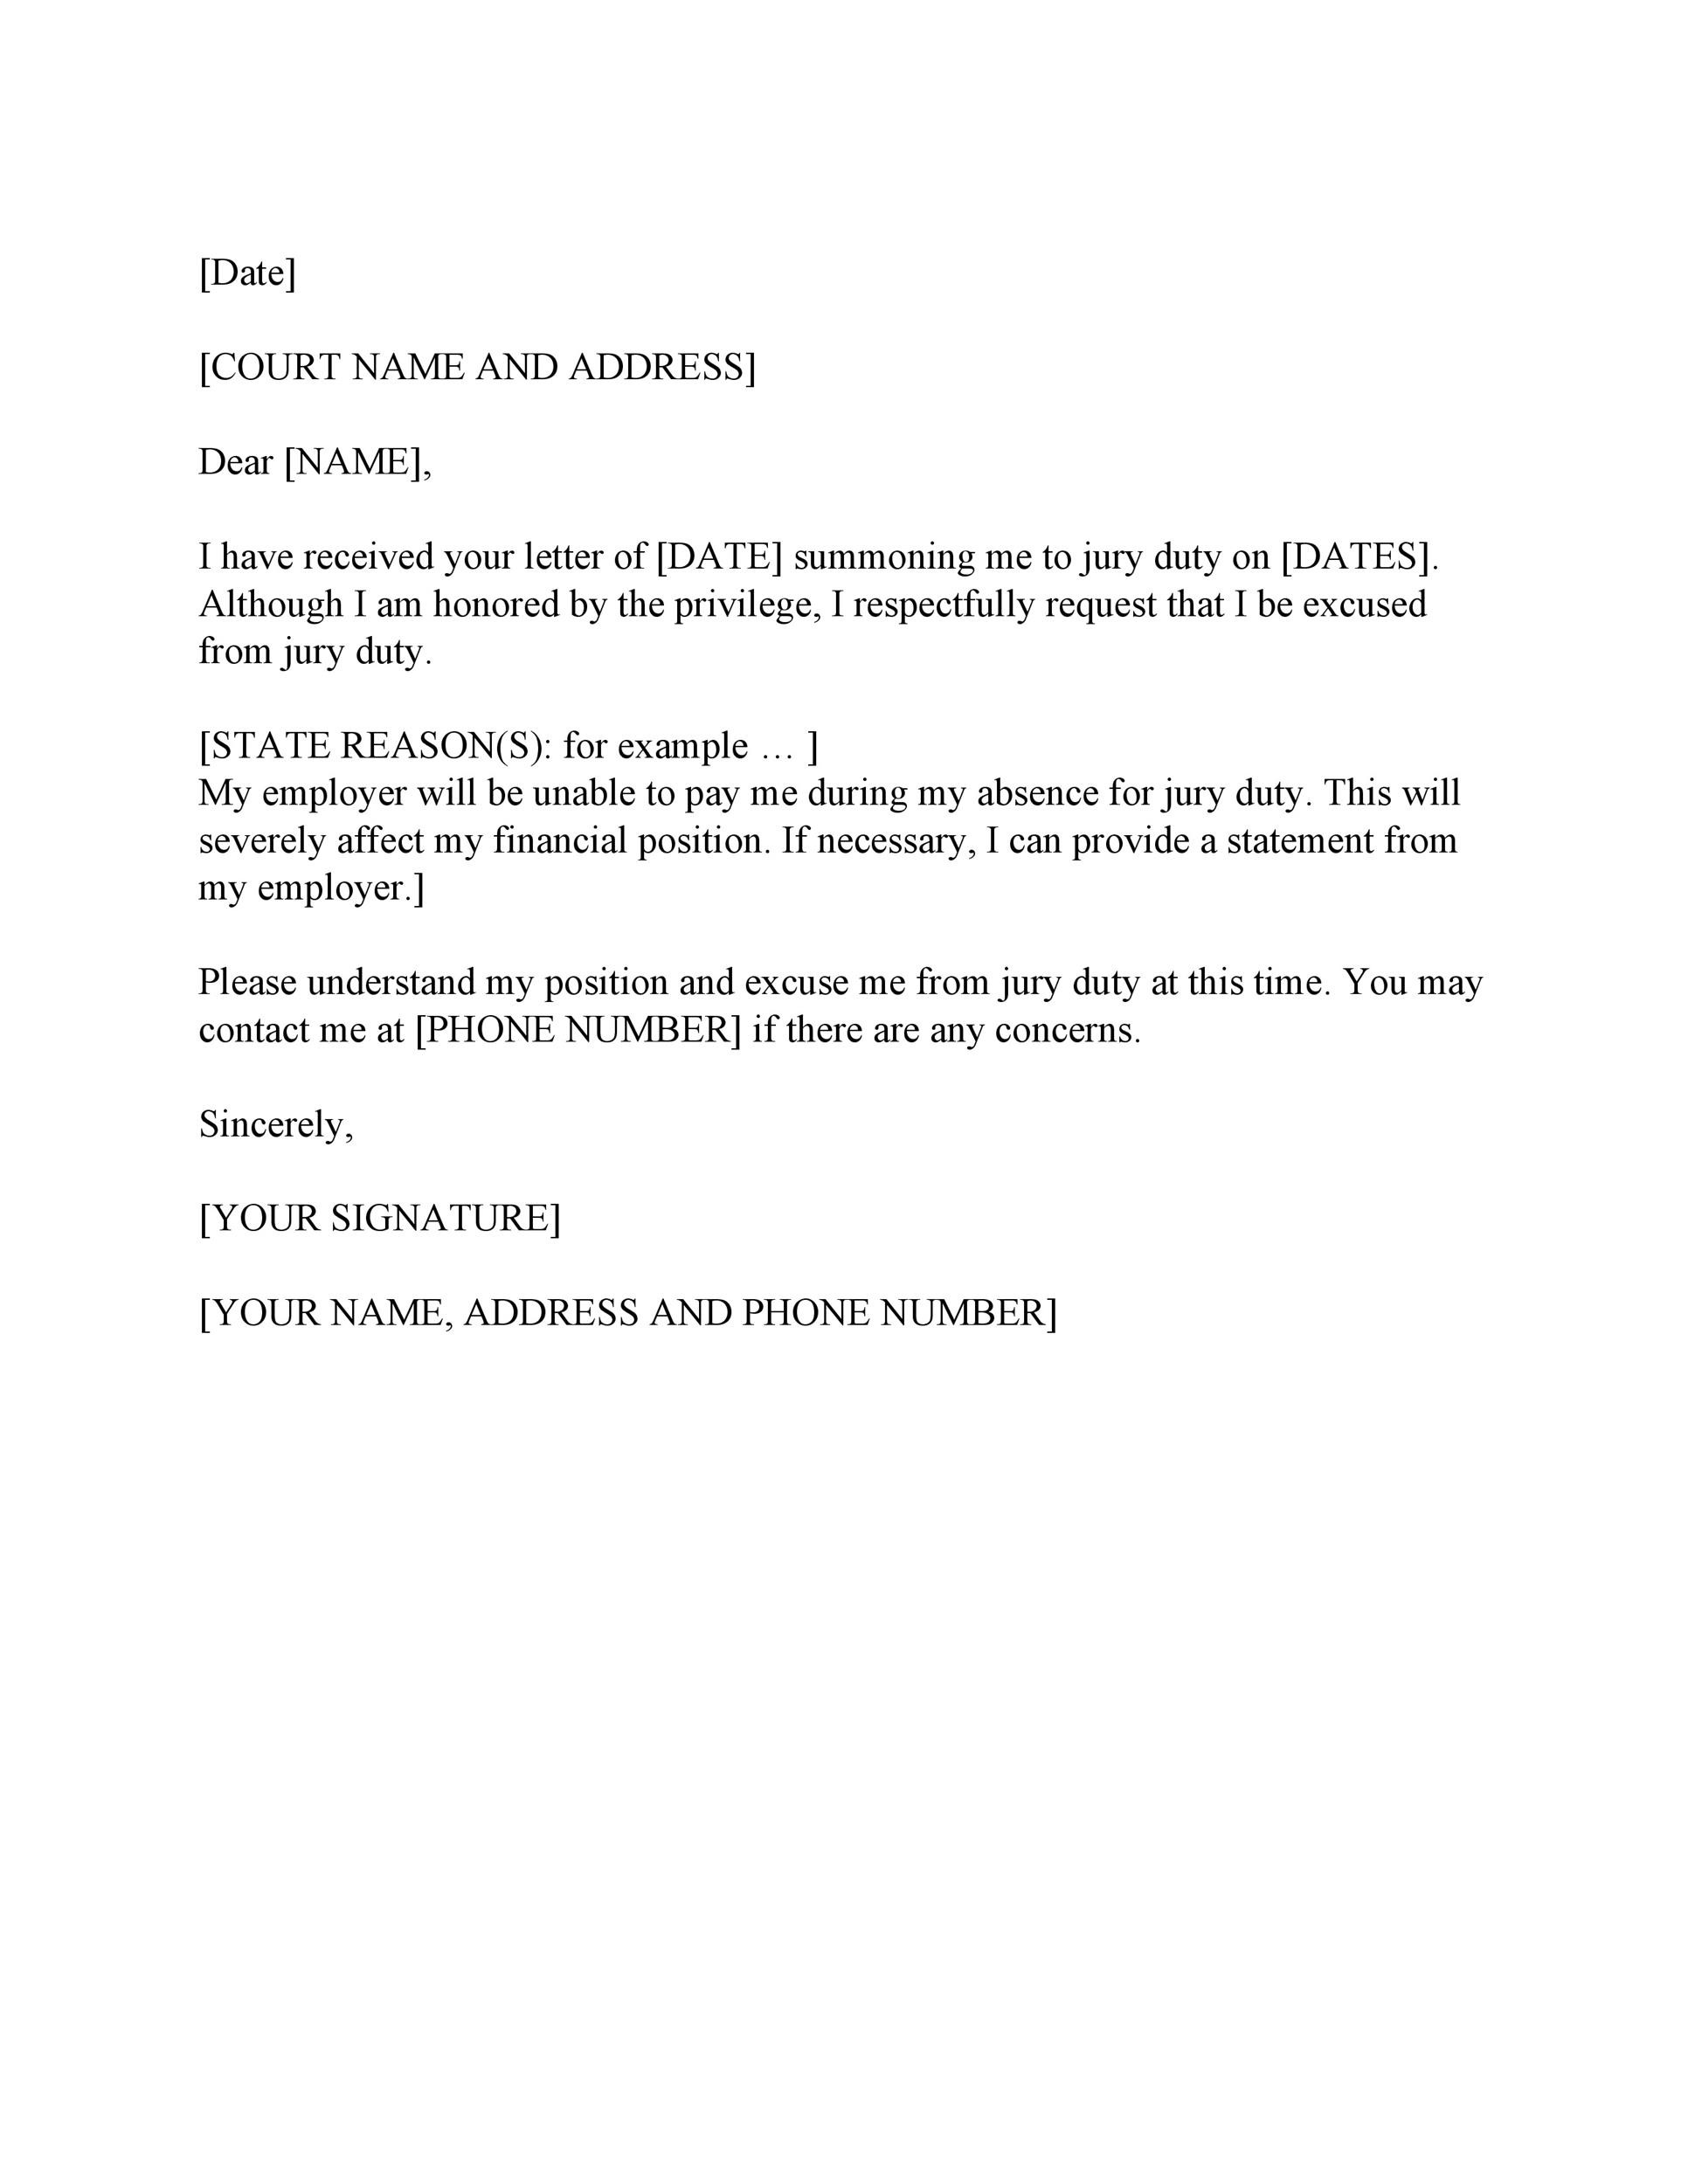 Free jury duty excuse letter template 32